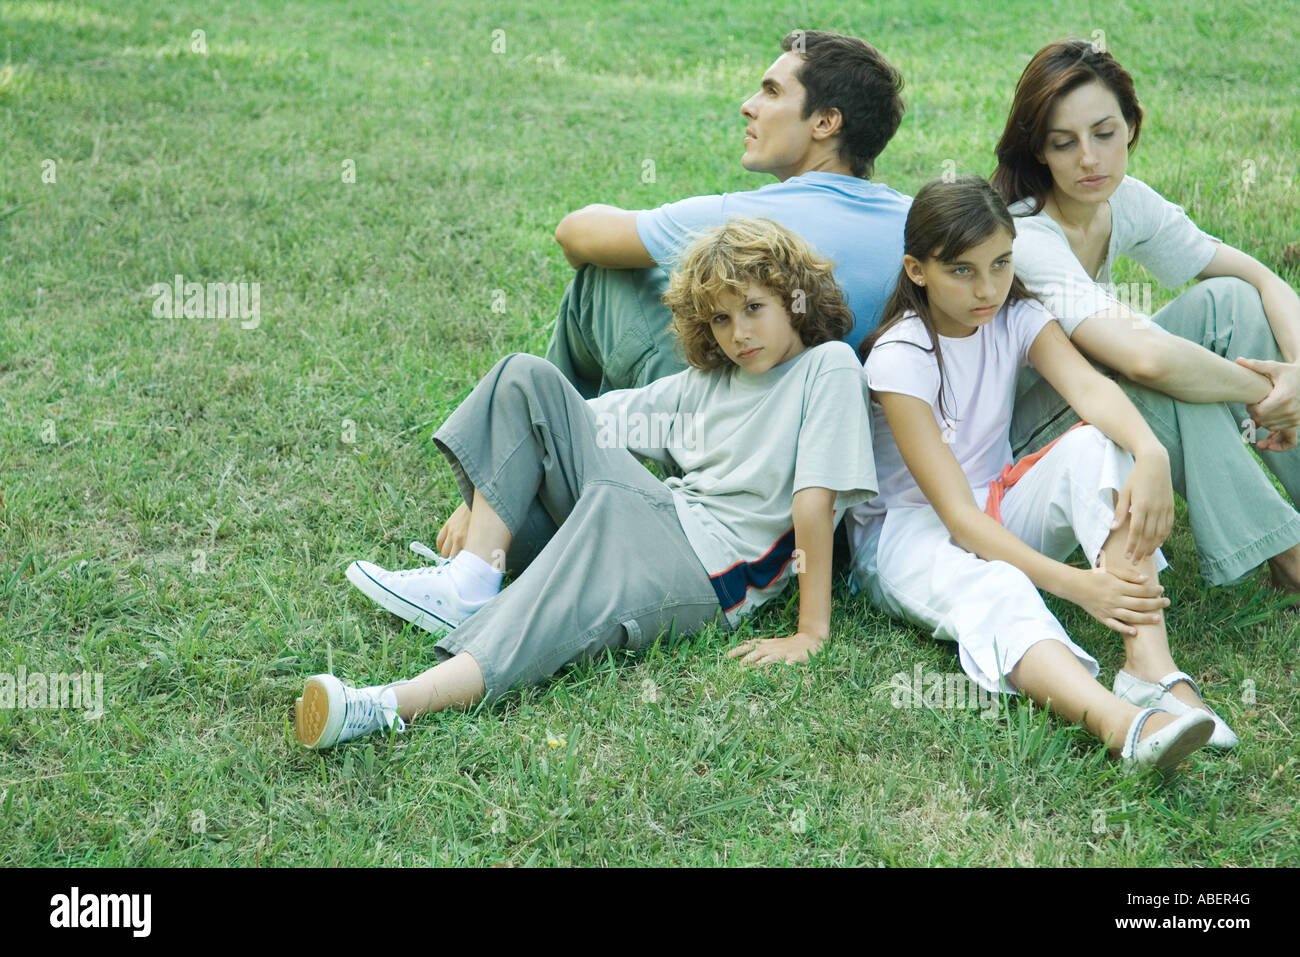 Family outdoors, sitting on grass back to back - Stock Image